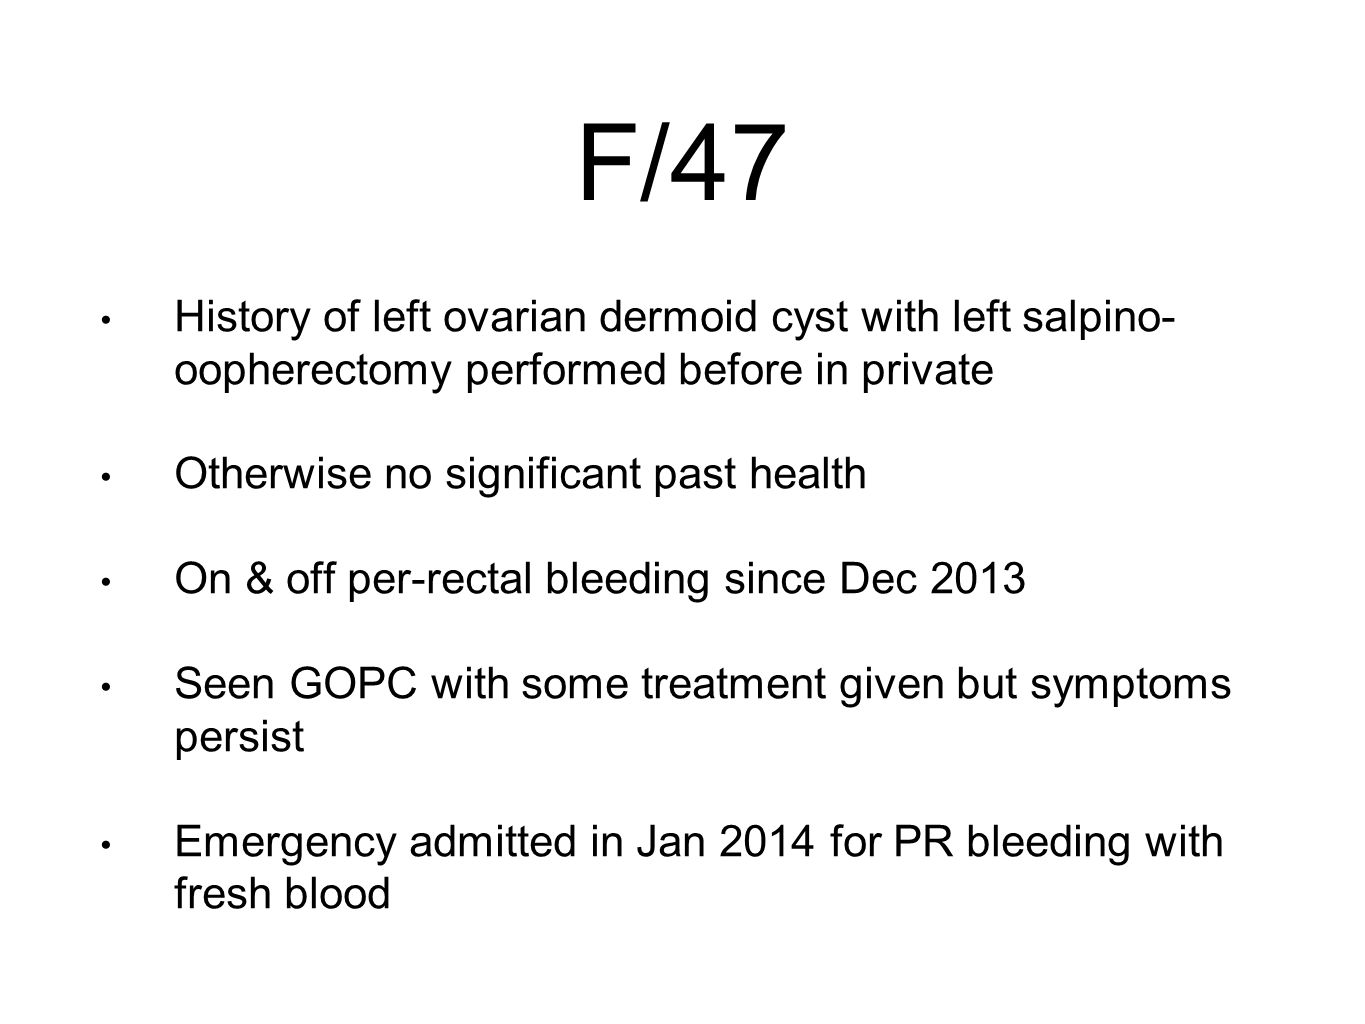 F/47 History of left ovarian dermoid cyst with left salpino- oopherectomy performed before in private Otherwise no significant past health On & off per-rectal bleeding since Dec 2013 Seen GOPC with some treatment given but symptoms persist Emergency admitted in Jan 2014 for PR bleeding with fresh blood